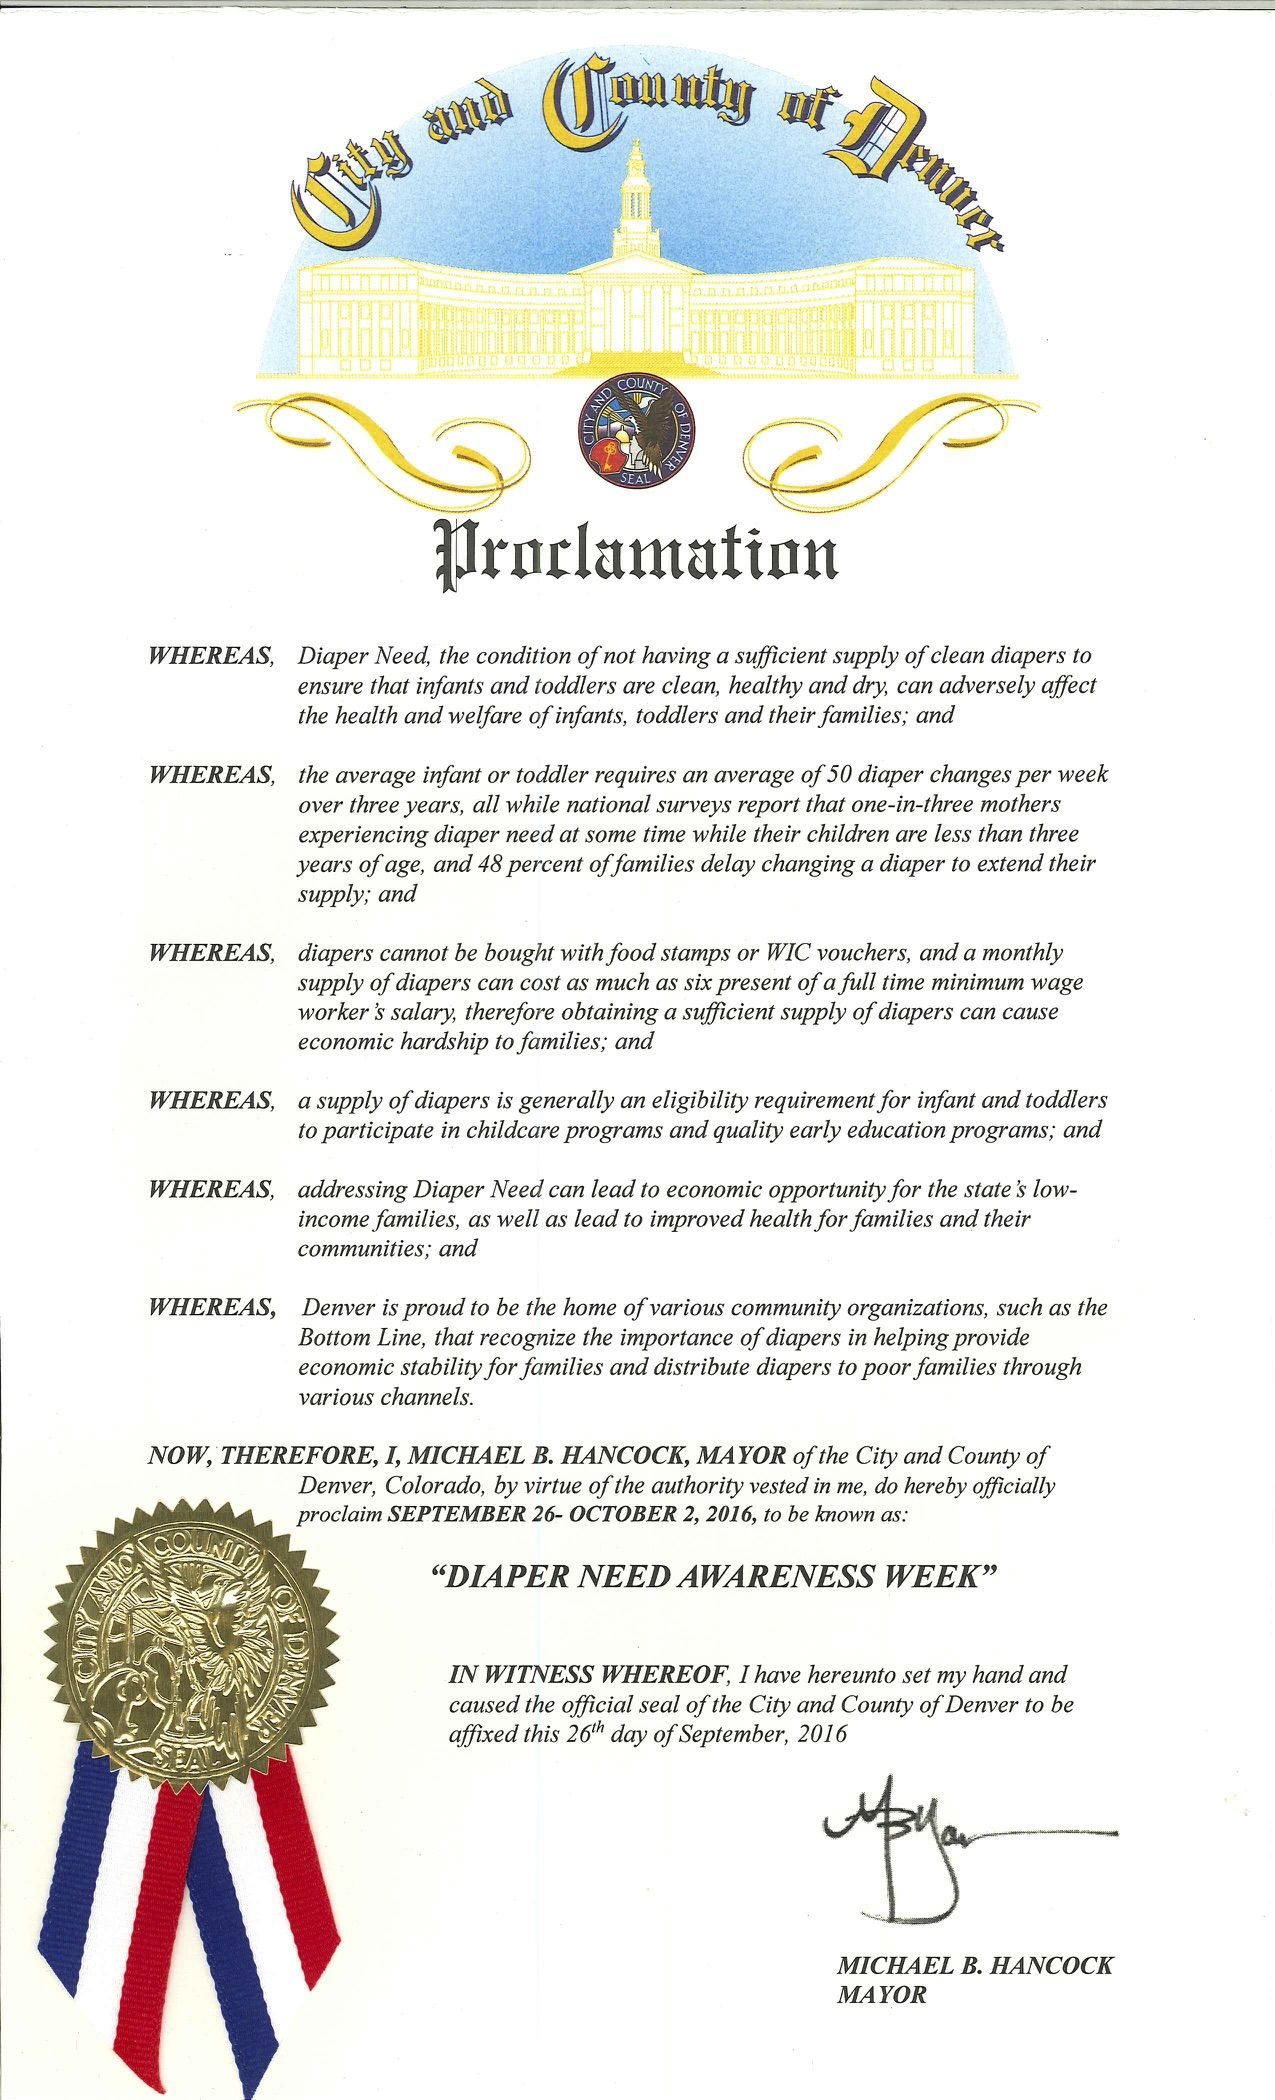 DENVER, CO - Mayoral proclamation recognizing Diaper Need Awareness Week (Sep. 26-Oct. 2, 2016) #DiaperNeed Diaperneed.org